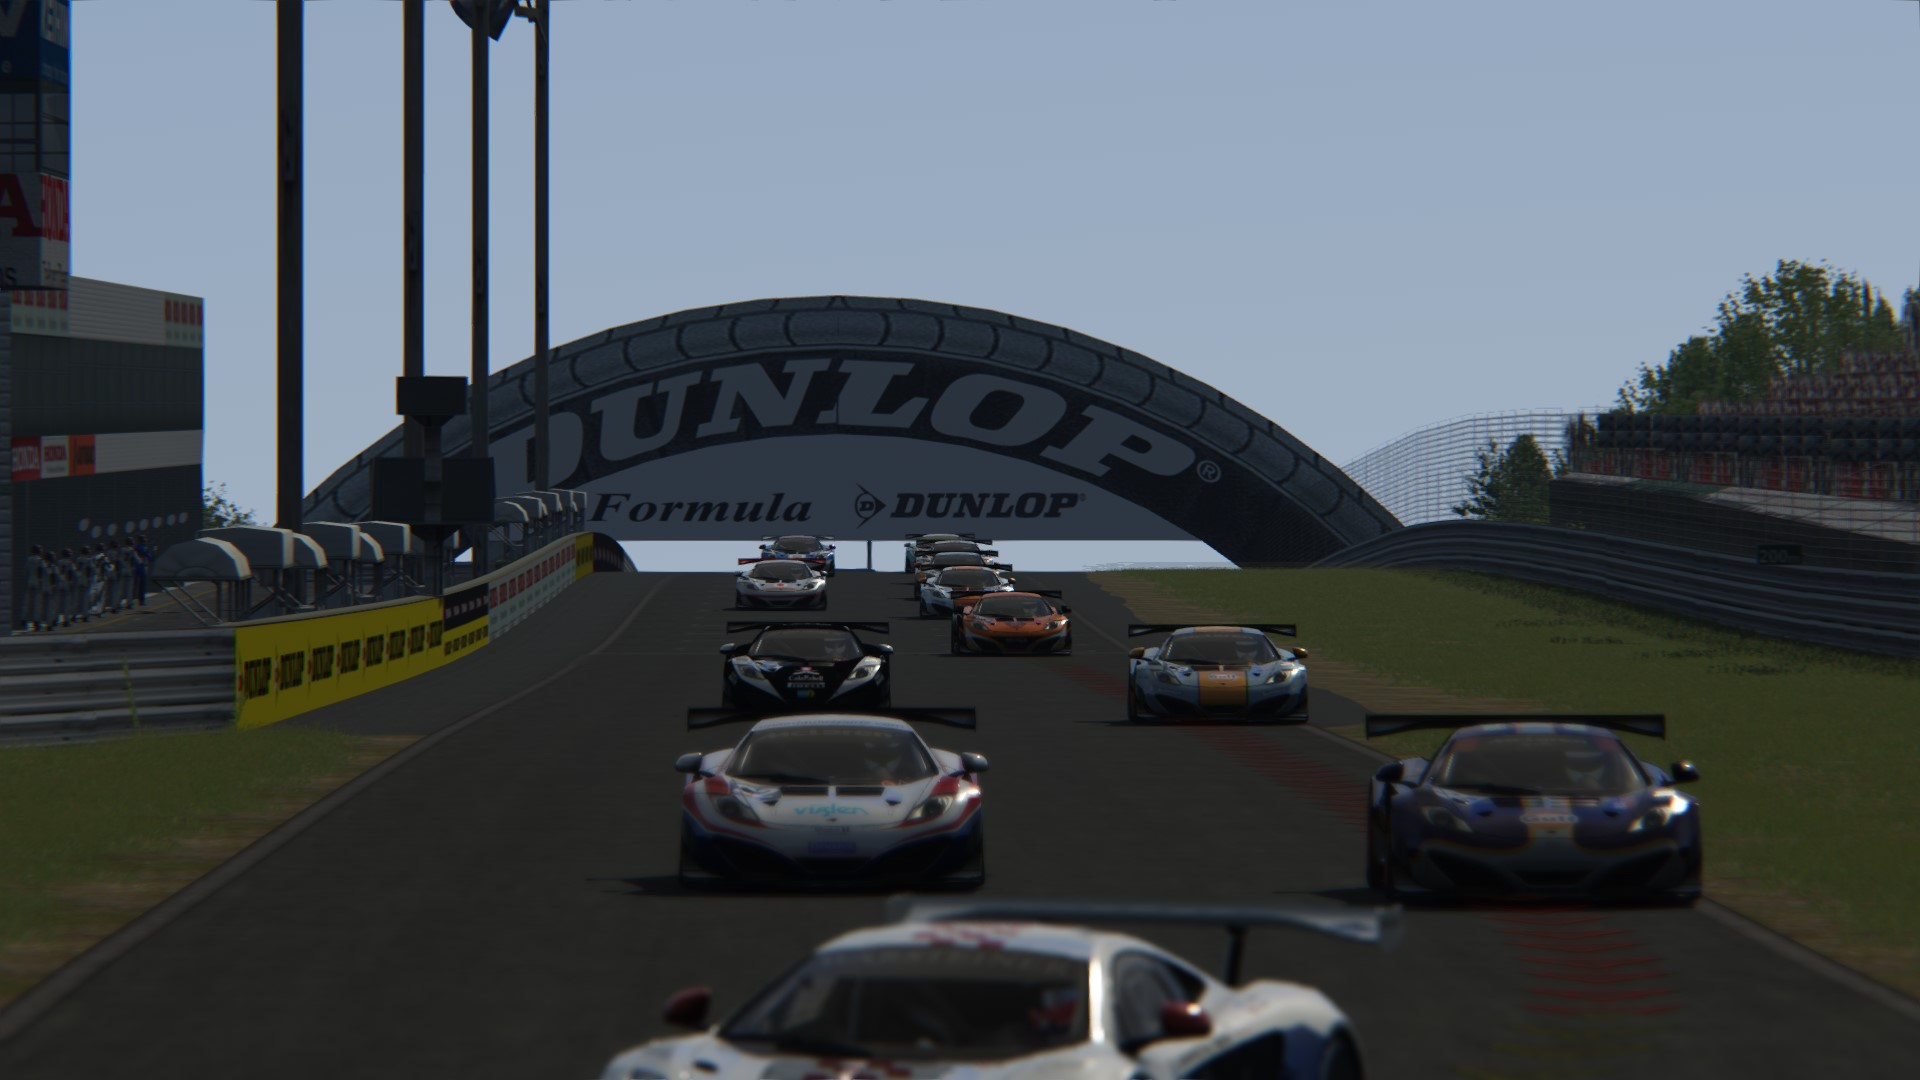 Screenshot_mclaren_mp412c_gt3_sportsland_sugo_7-4-116-10-32-30.jpg